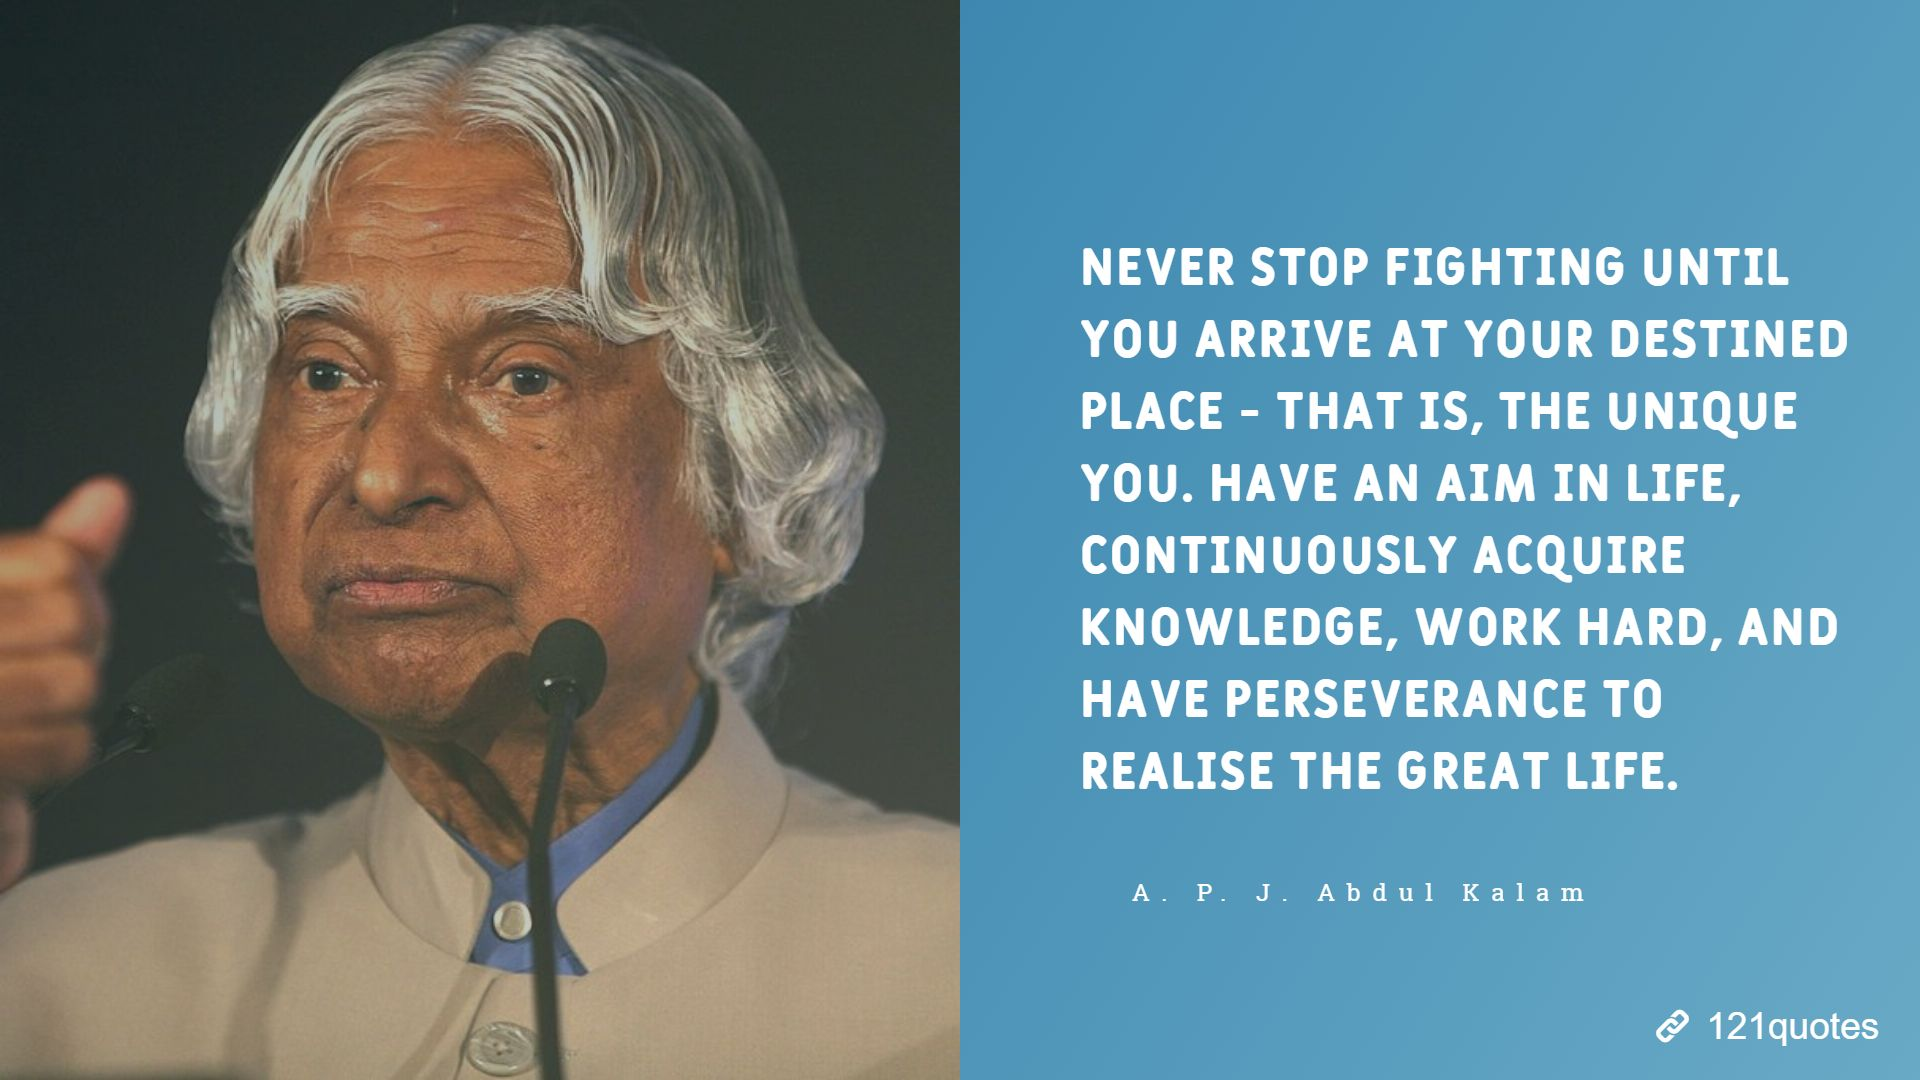 Never stop fighting until you arrive at your destined place - that is, the unique you. Have an aim in life, continuously acquire knowledge, work hard, and have perseverance to realise the great life. A. P. J. Abdul Kalam